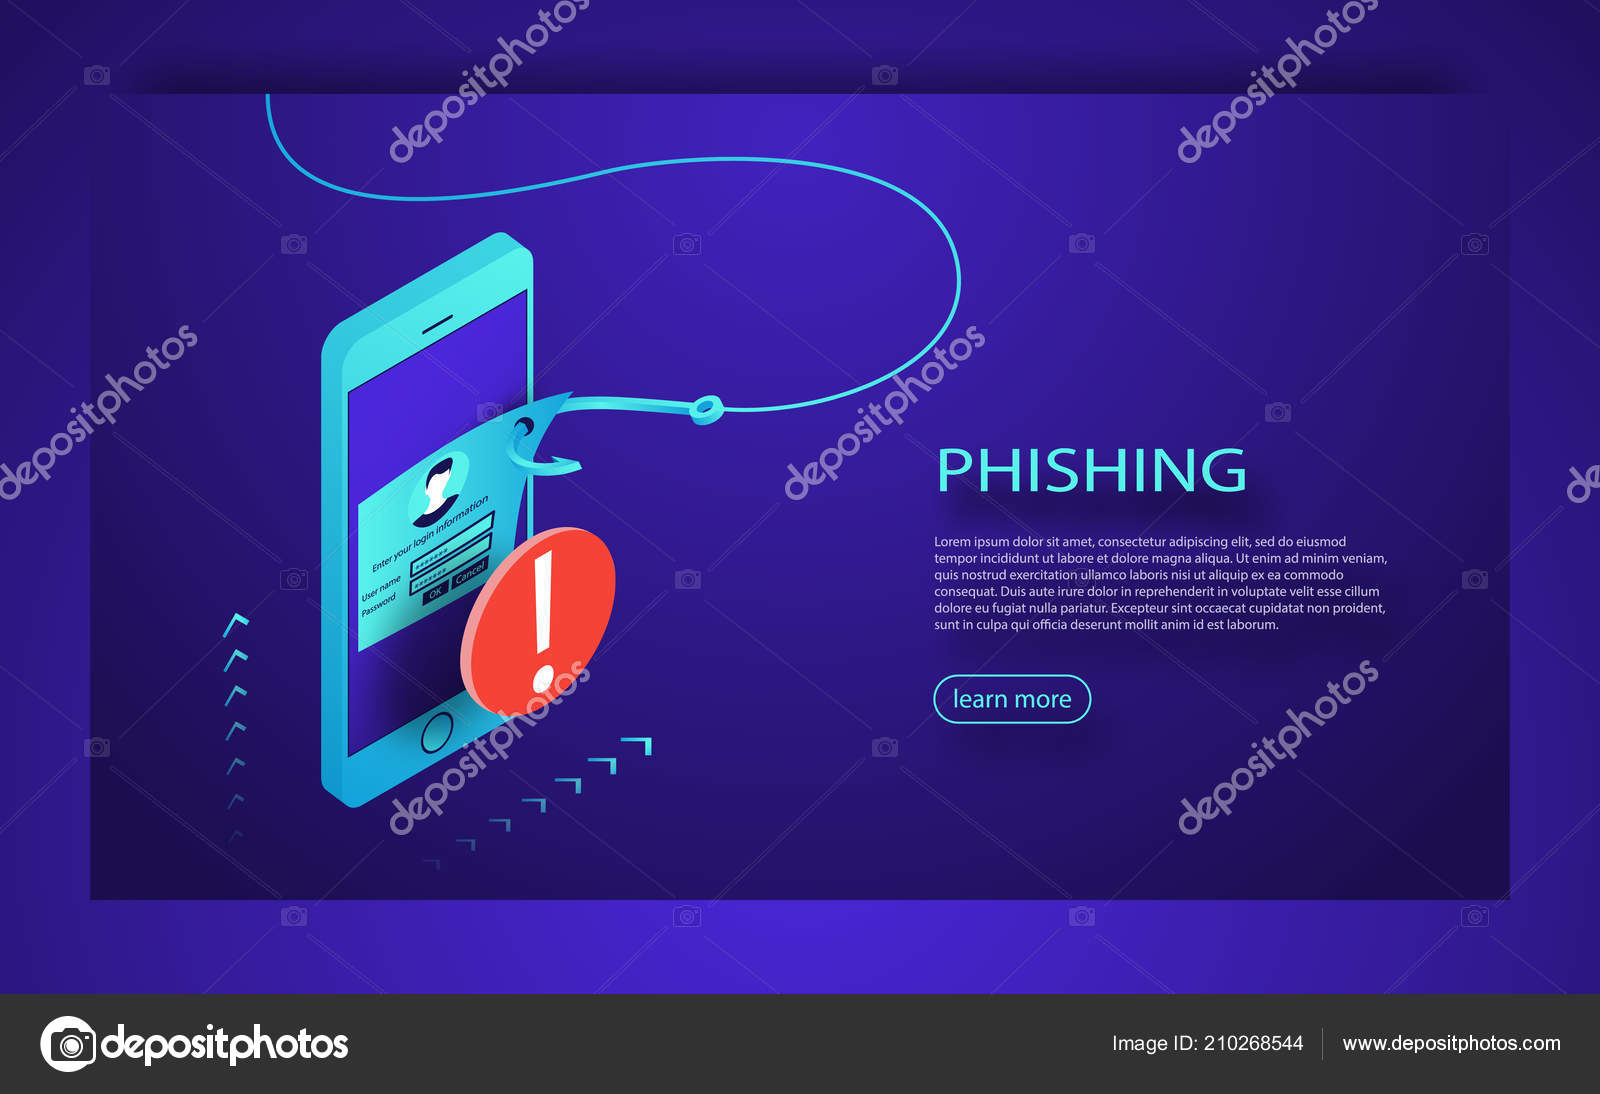 Internet phishing, hacked login and password  Phishing scam, hacker